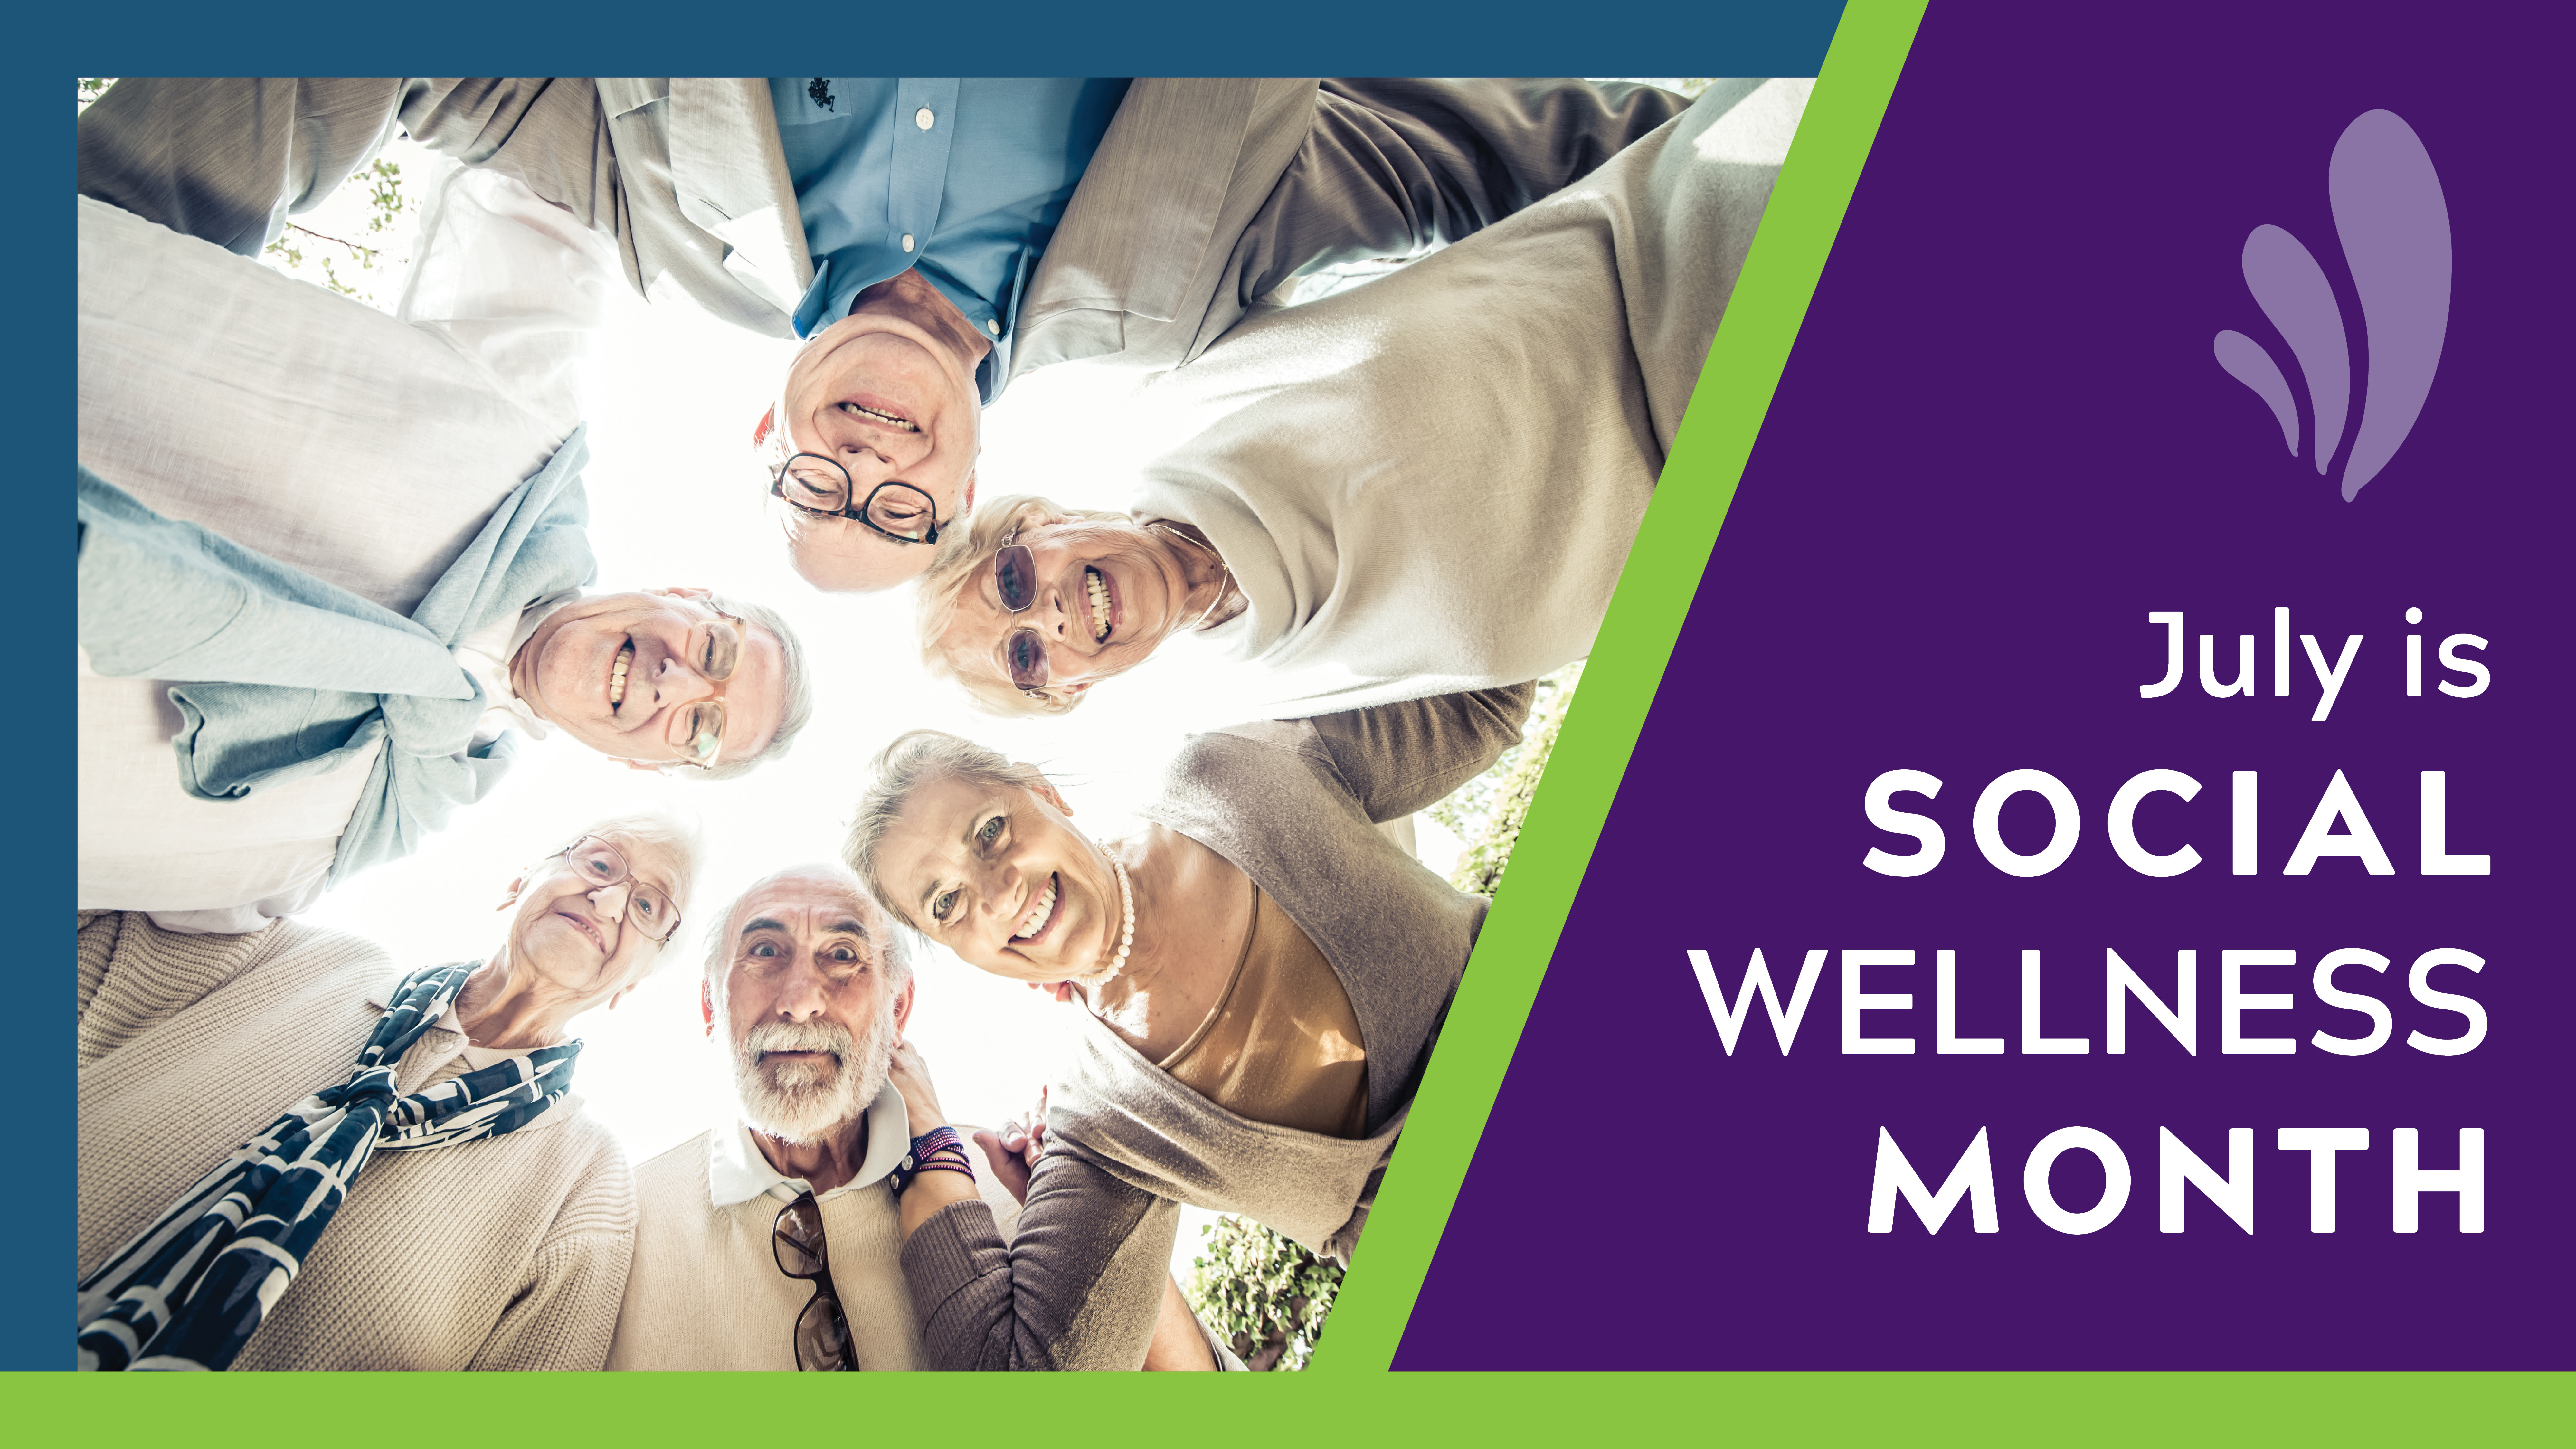 July is Social Wellness Month